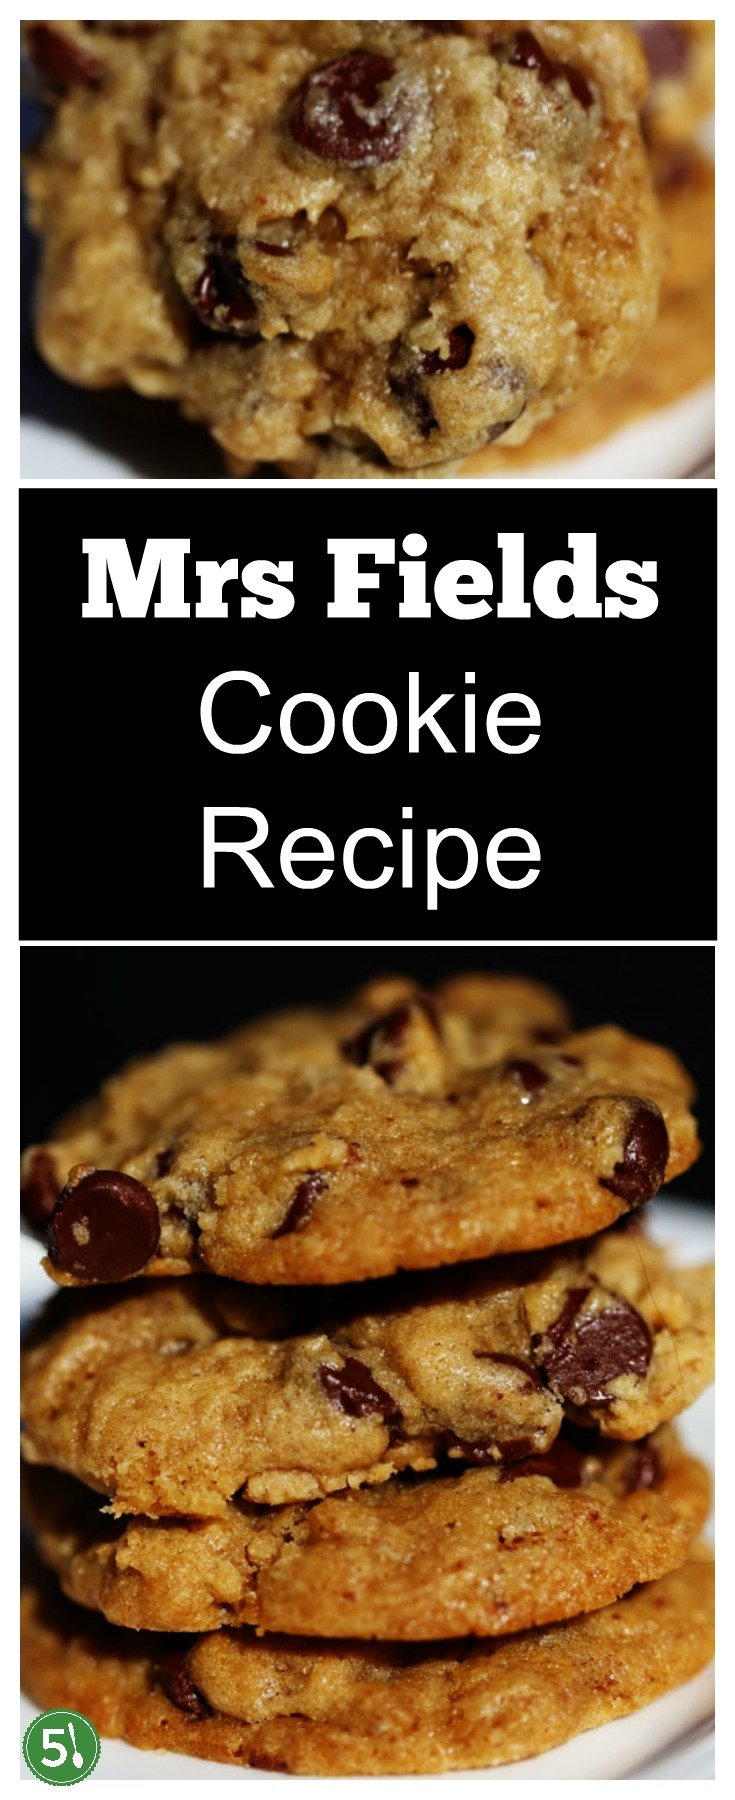 Mrs Fields Cookie Copycat Recipe stuffed with chocolate chips is just like you remember from the mall. SO buttery and melt in your mouth delicious!!